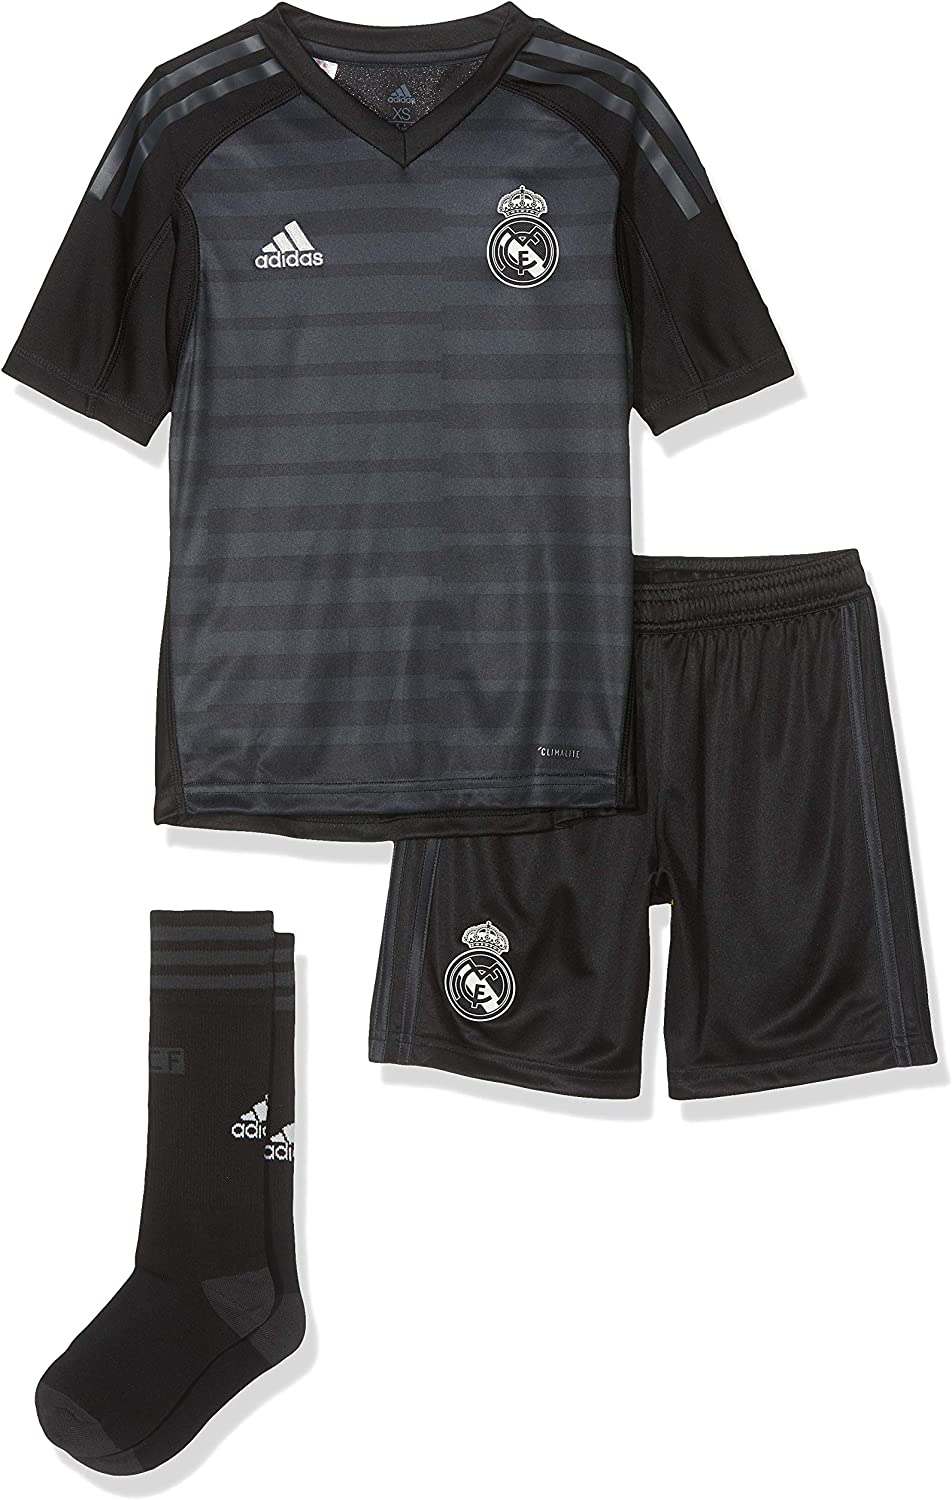 adidas 18/19 Real Madrid Away Kit - Lfp Badge - Conjunto Unisex niños